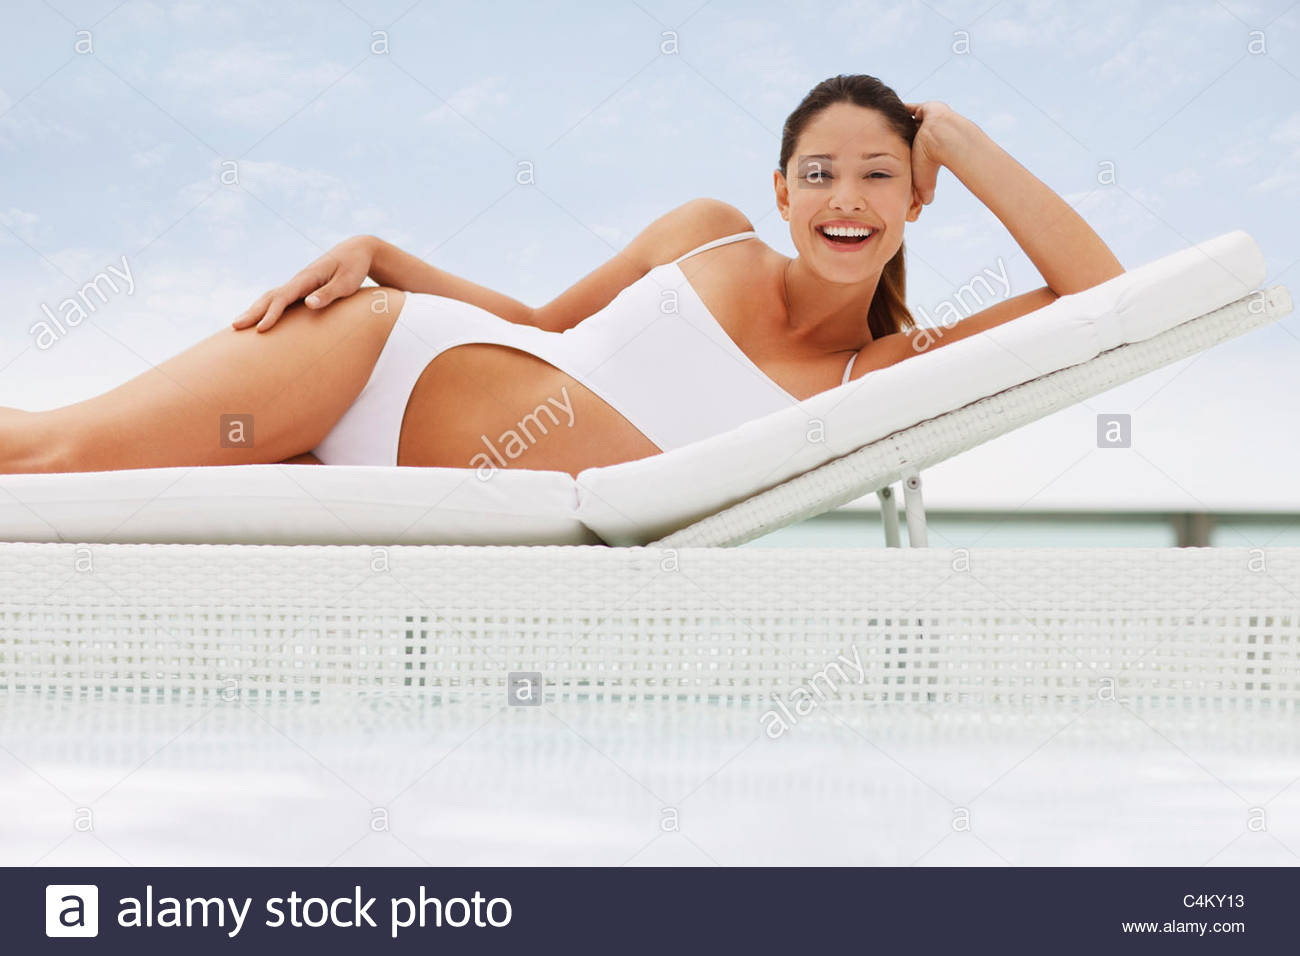 Woman in bathing suit laying on lounge chair at poolside - Stock Image